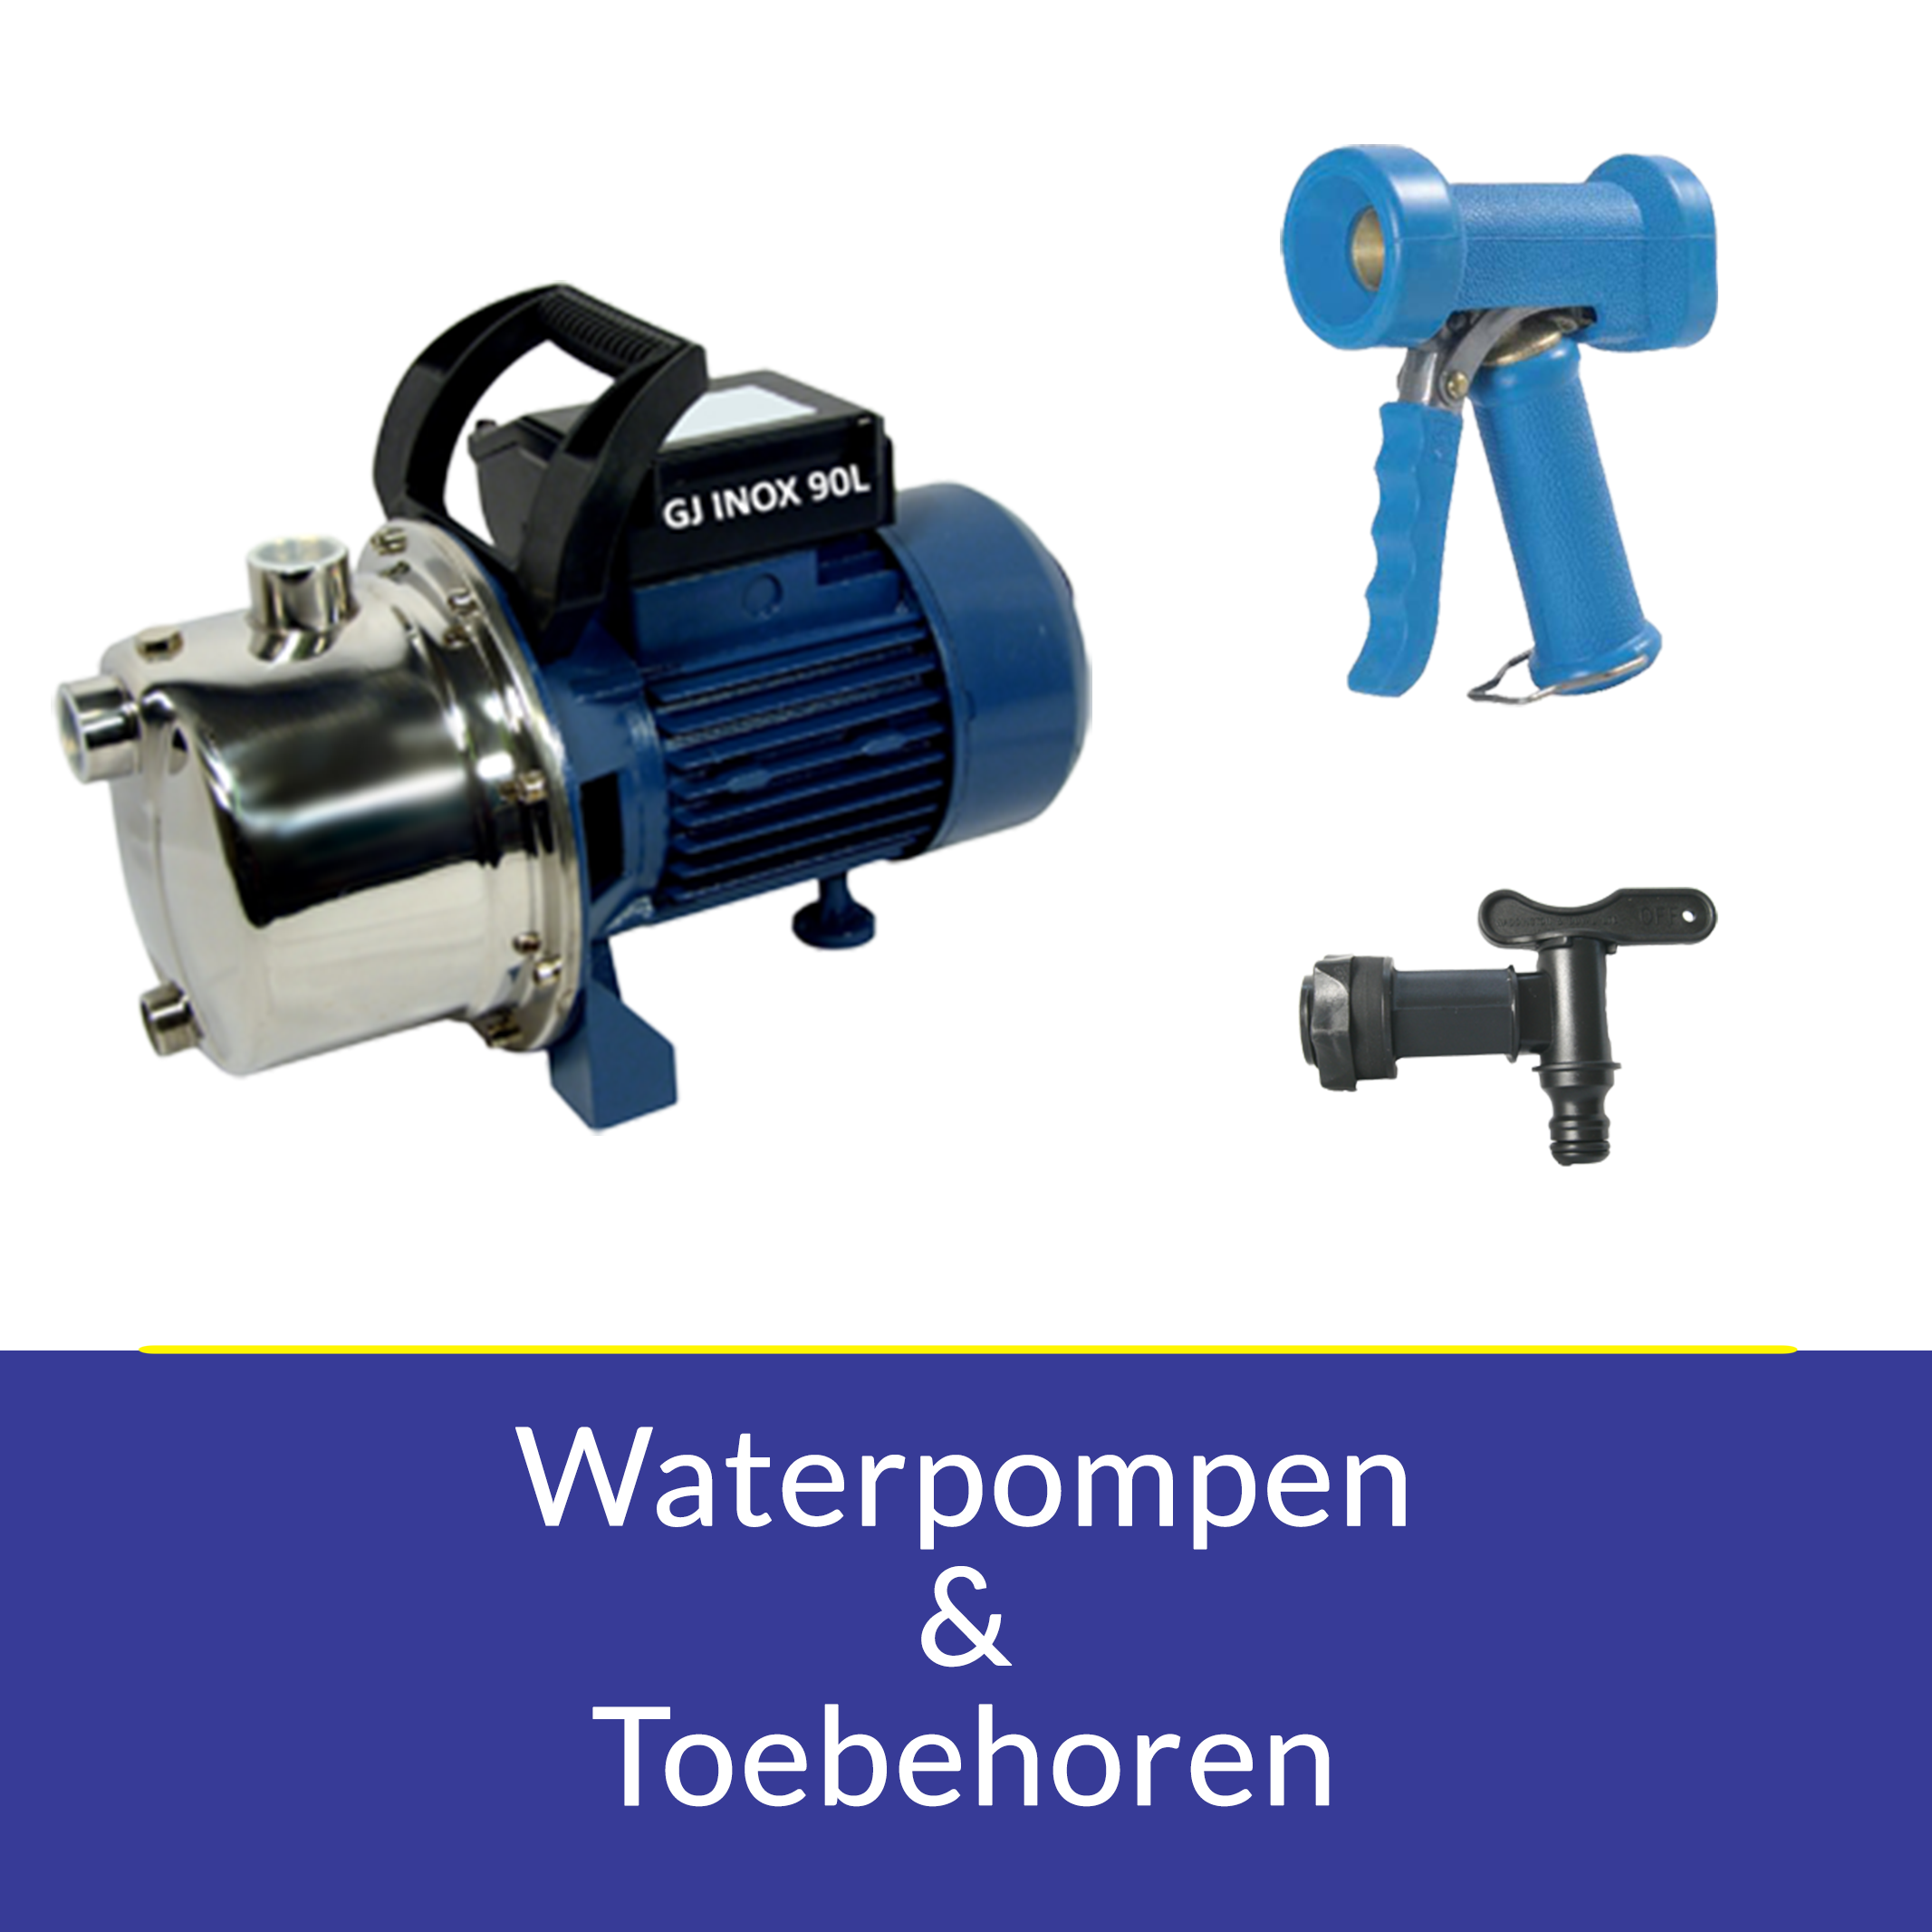 WaterpompenEnToebehoren